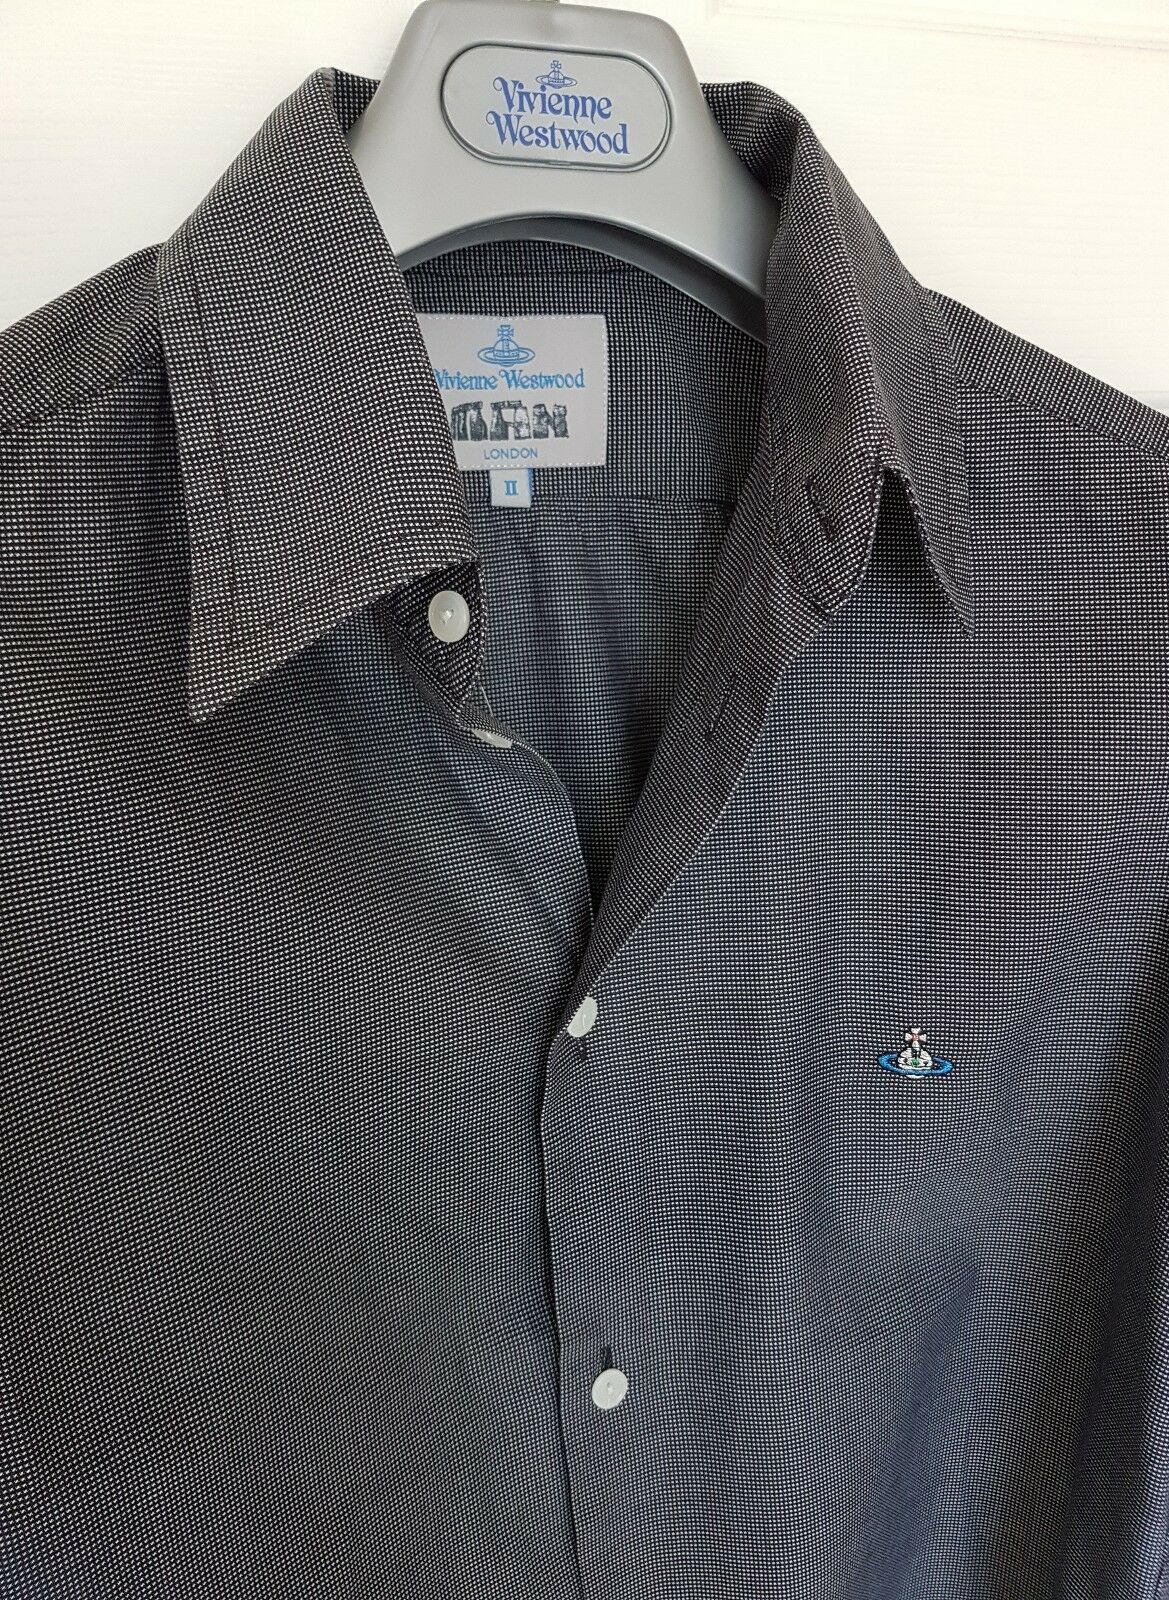 Mens MAN by VIVIENNE WESTWOOD long sleeve shirt size small medium. RRP .